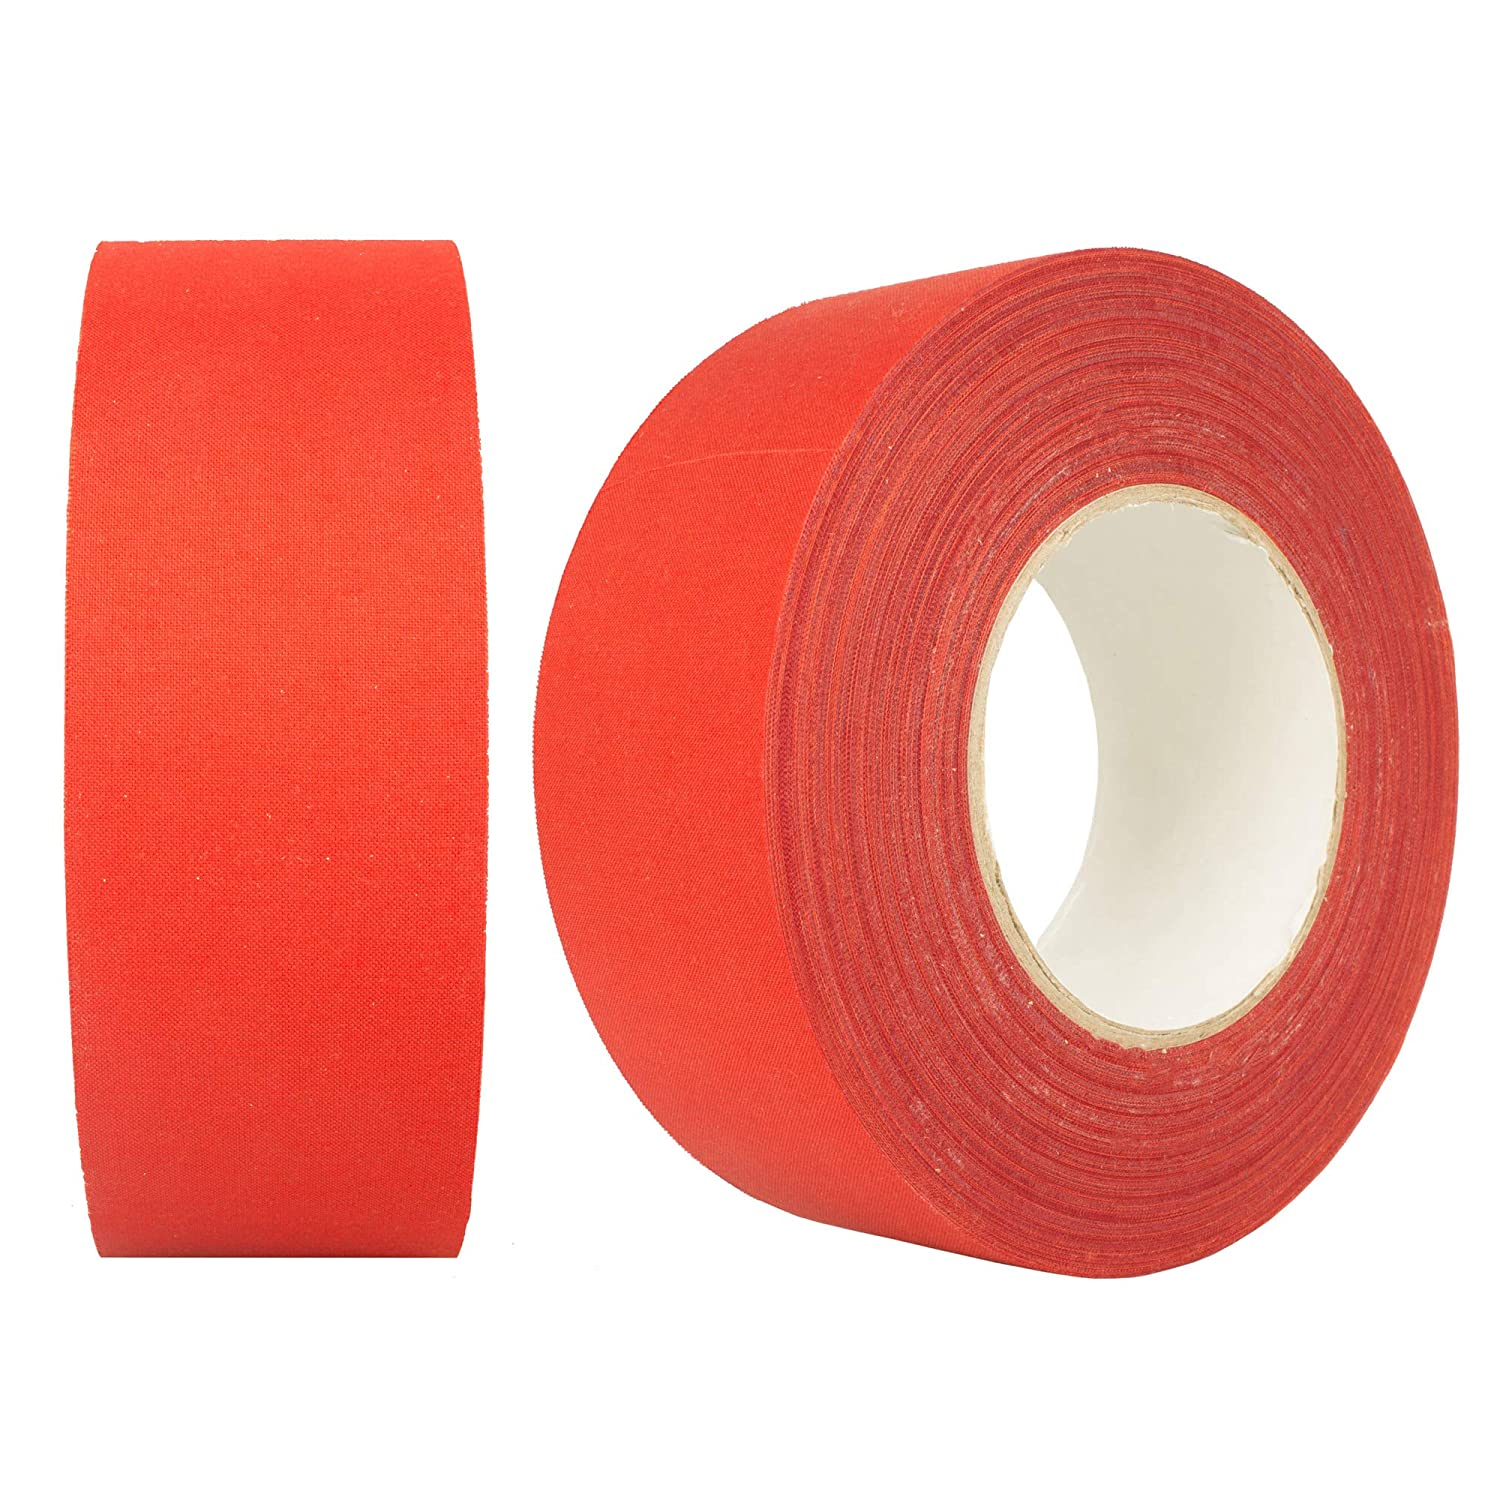 Perfect for Lyra Trapeze /& Other Aerial Equipment Firetoys Aerial Adhesive Tape 2 50m x 5cm